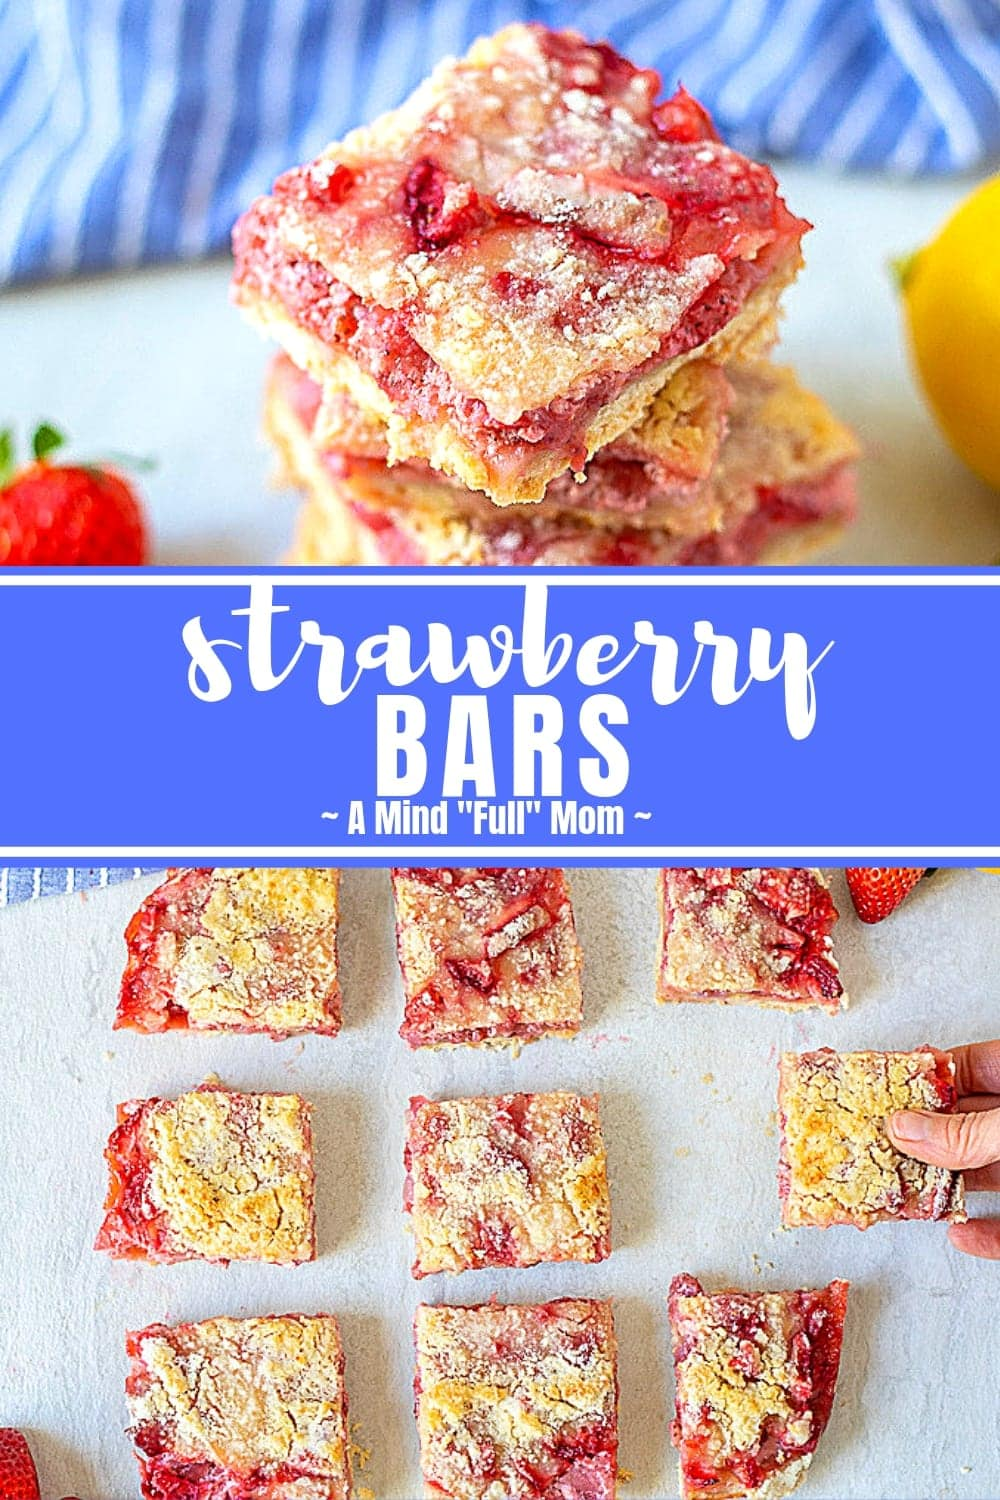 Throw away the rolling pins and bake up these Easy Strawberry Bars instead of Strawberry Pie! A buttery shortbread crust is topped with a creamy strawberry filling, with just a hint of lemon and finished with a streusel topping. These Strawberry Crumble Bars are irresistible!